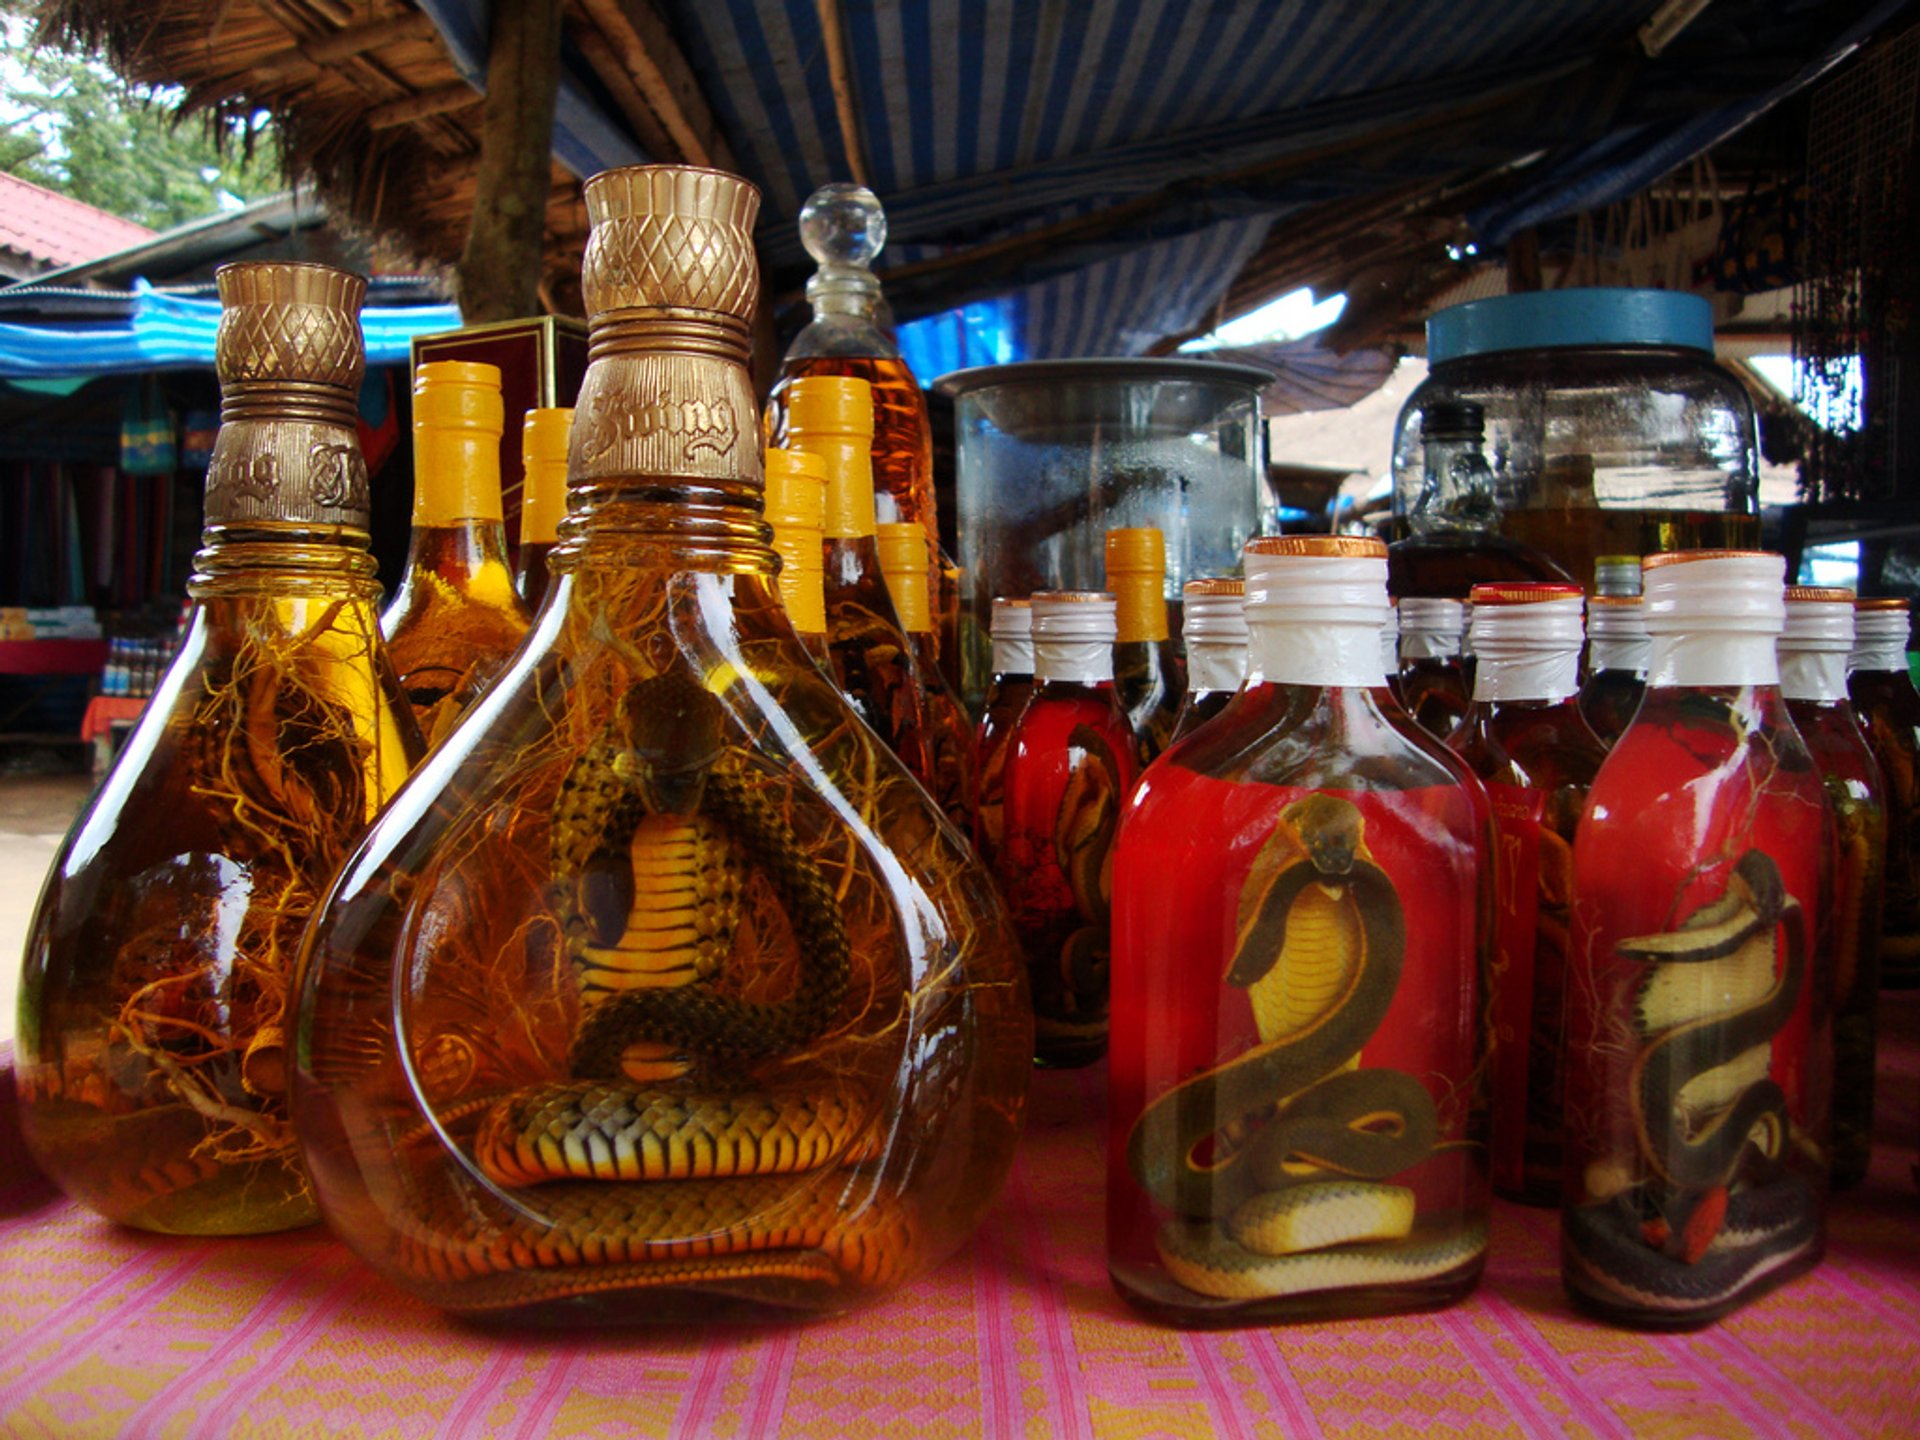 Lao-Lao Whiskey in Laos 2019 - Best Time